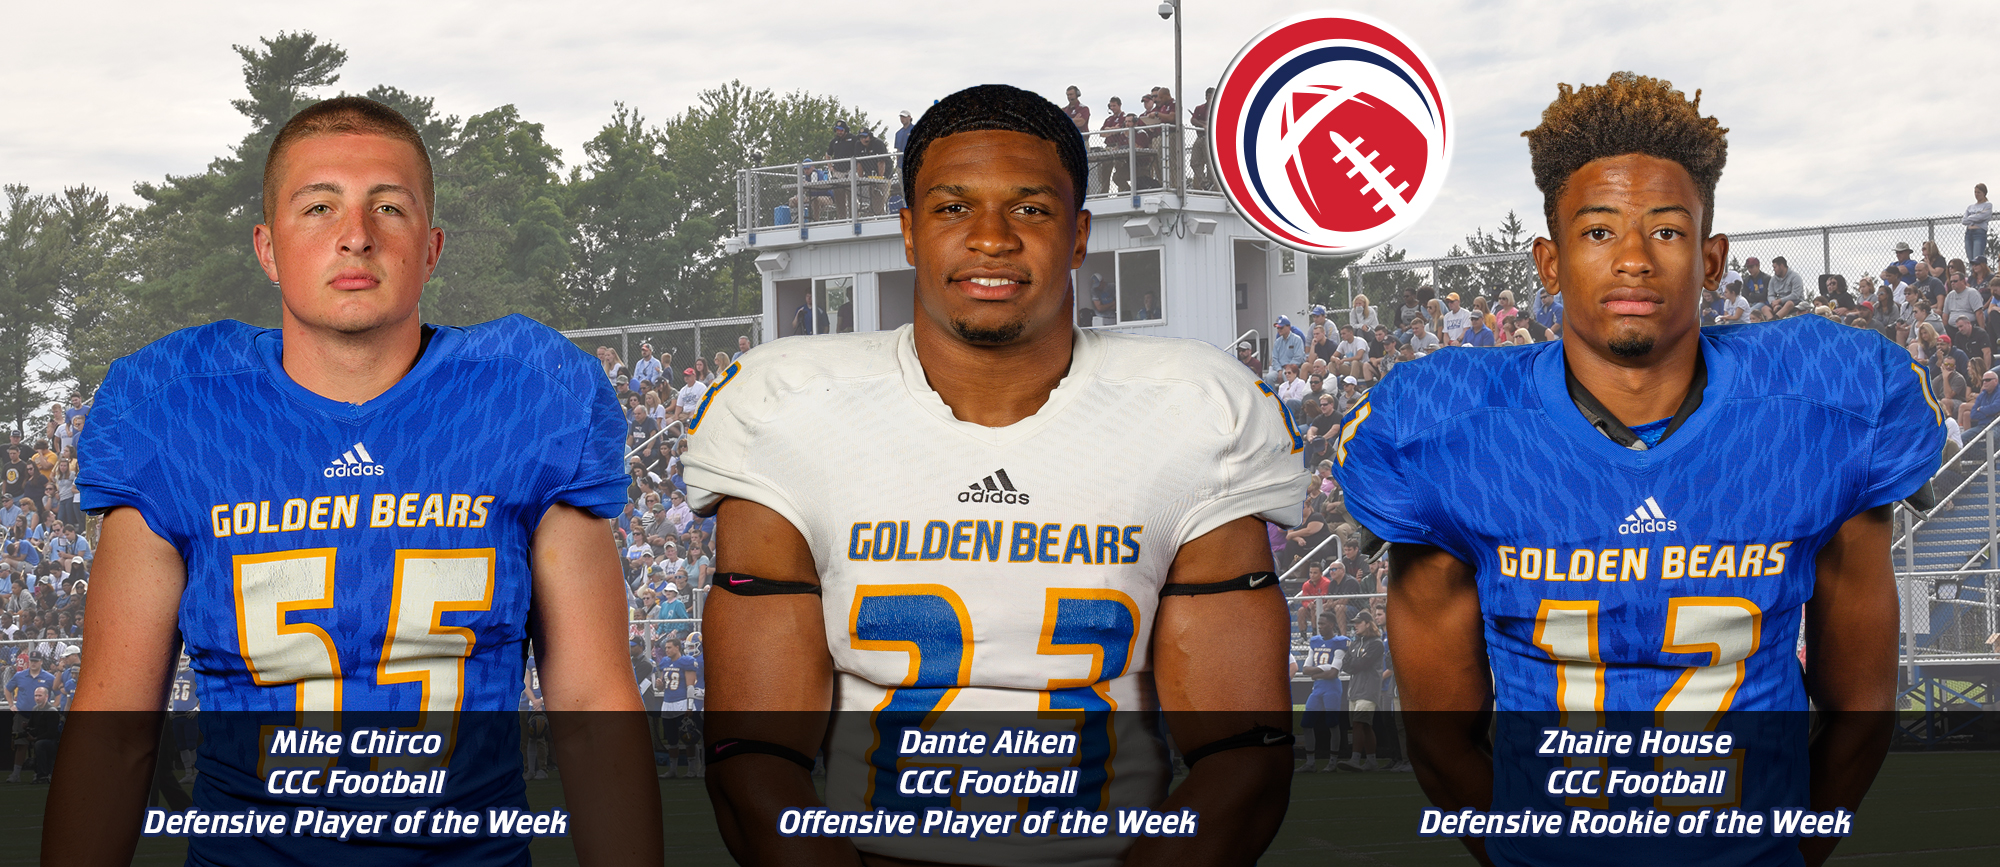 Aiken, Chirco & House Earn CCC Football Weekly Awards